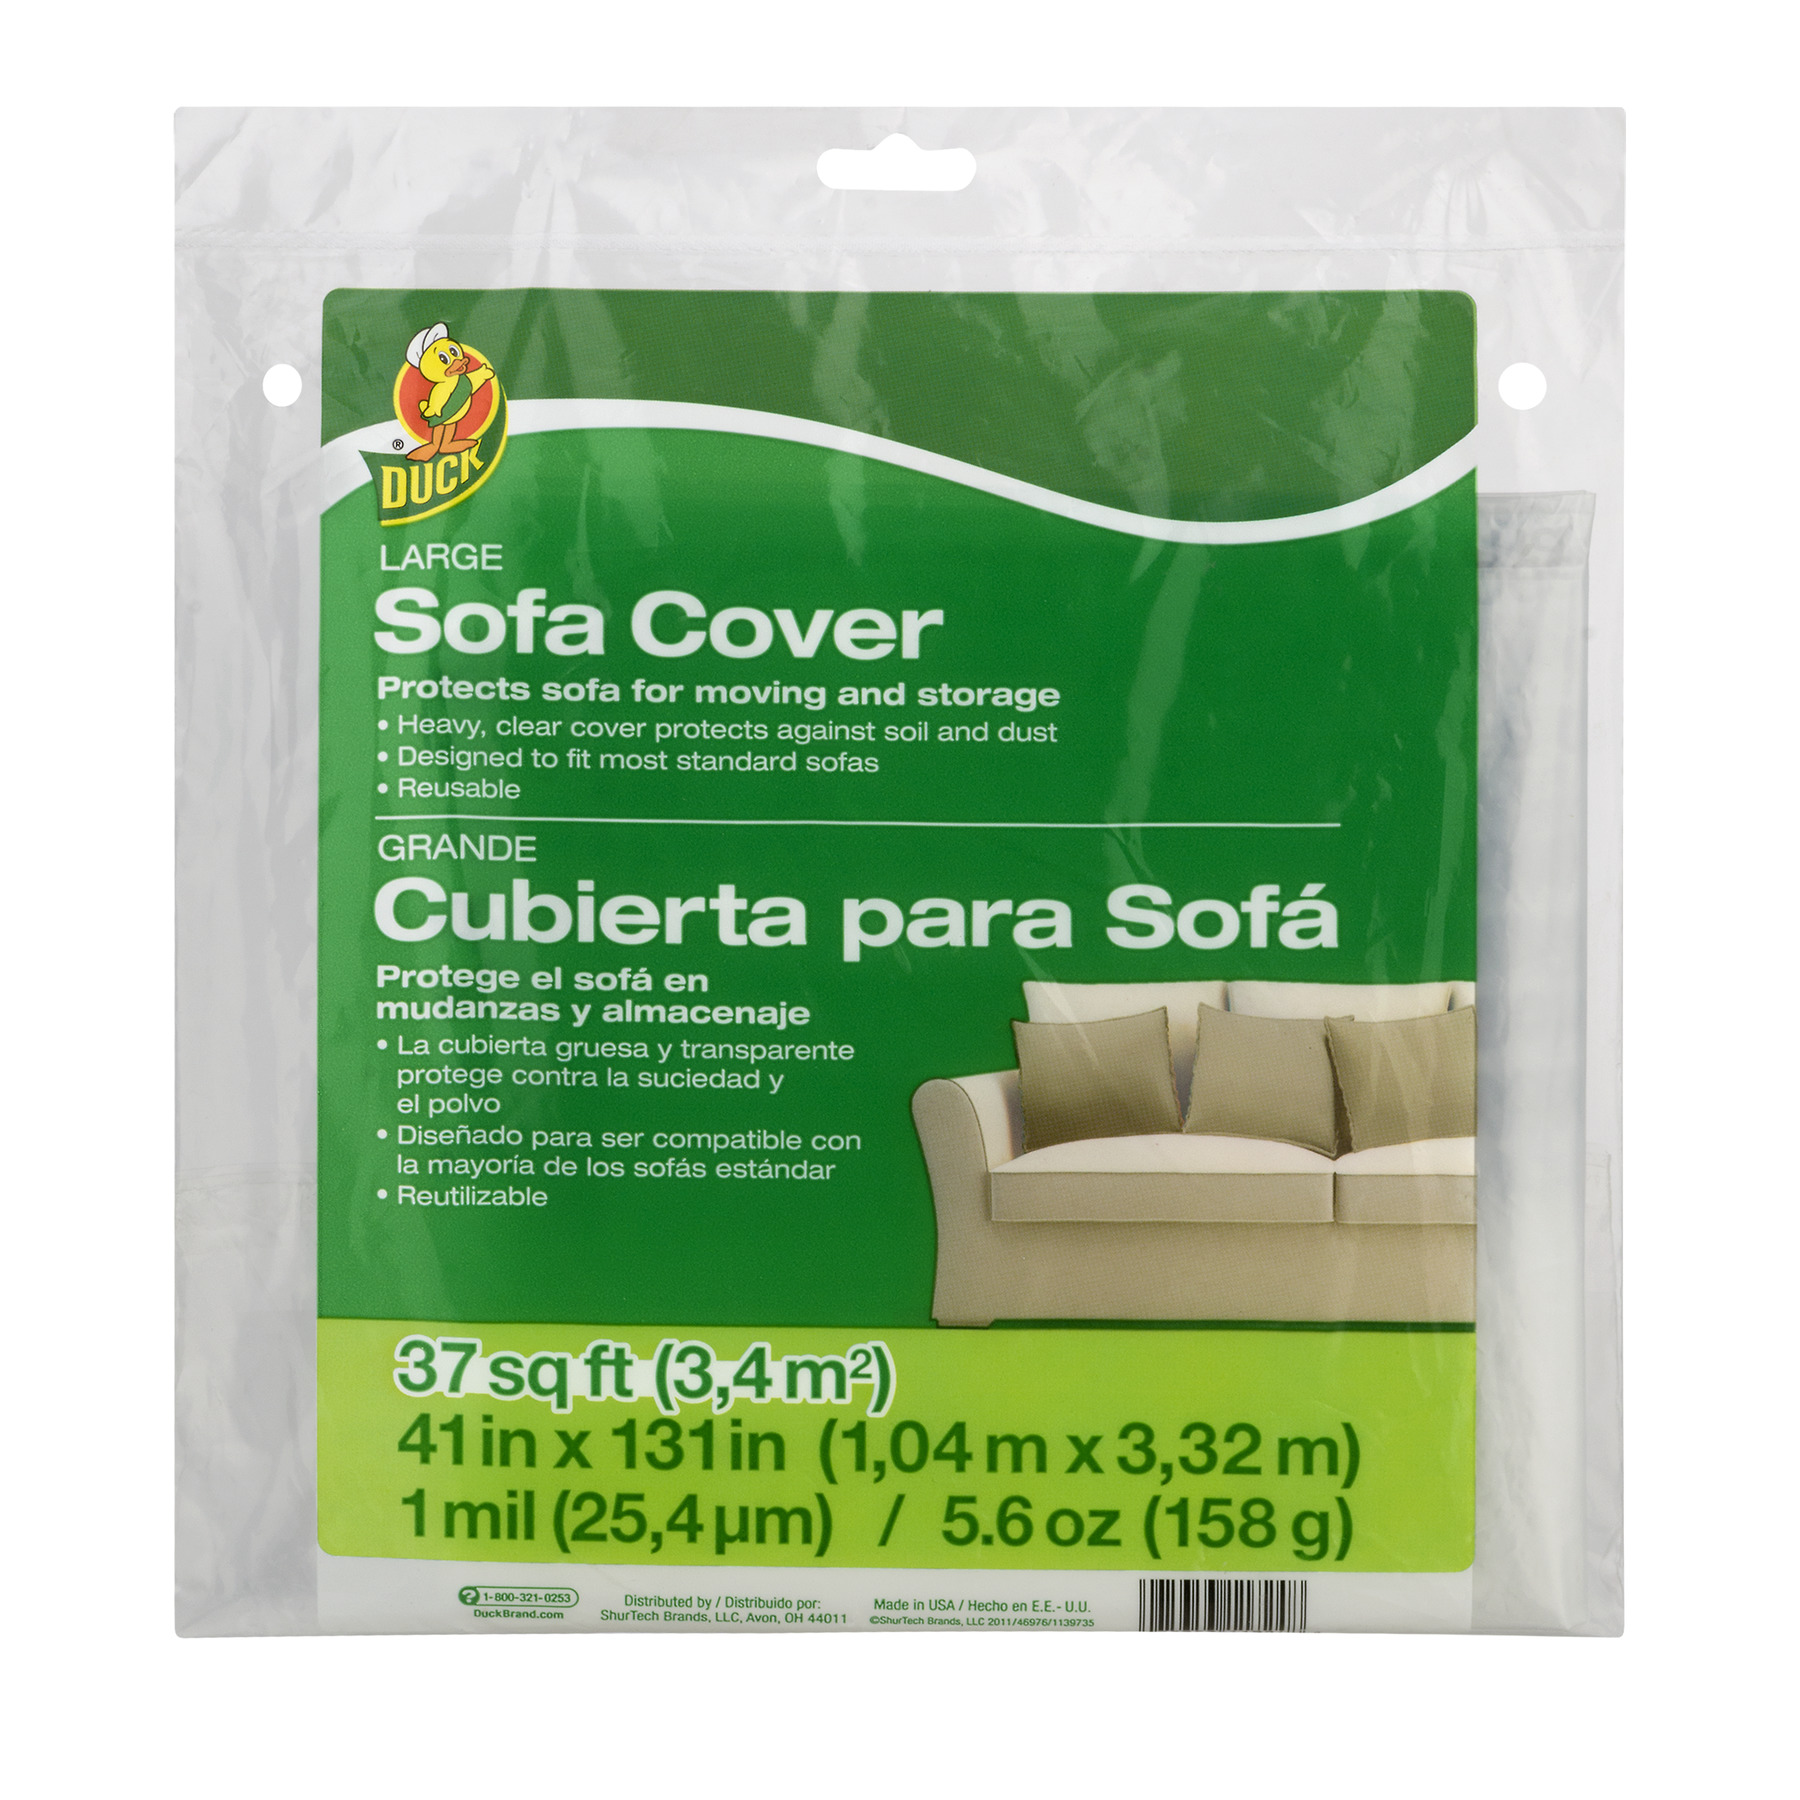 Duck Large Sofa Cover, 37.0 SQ FT